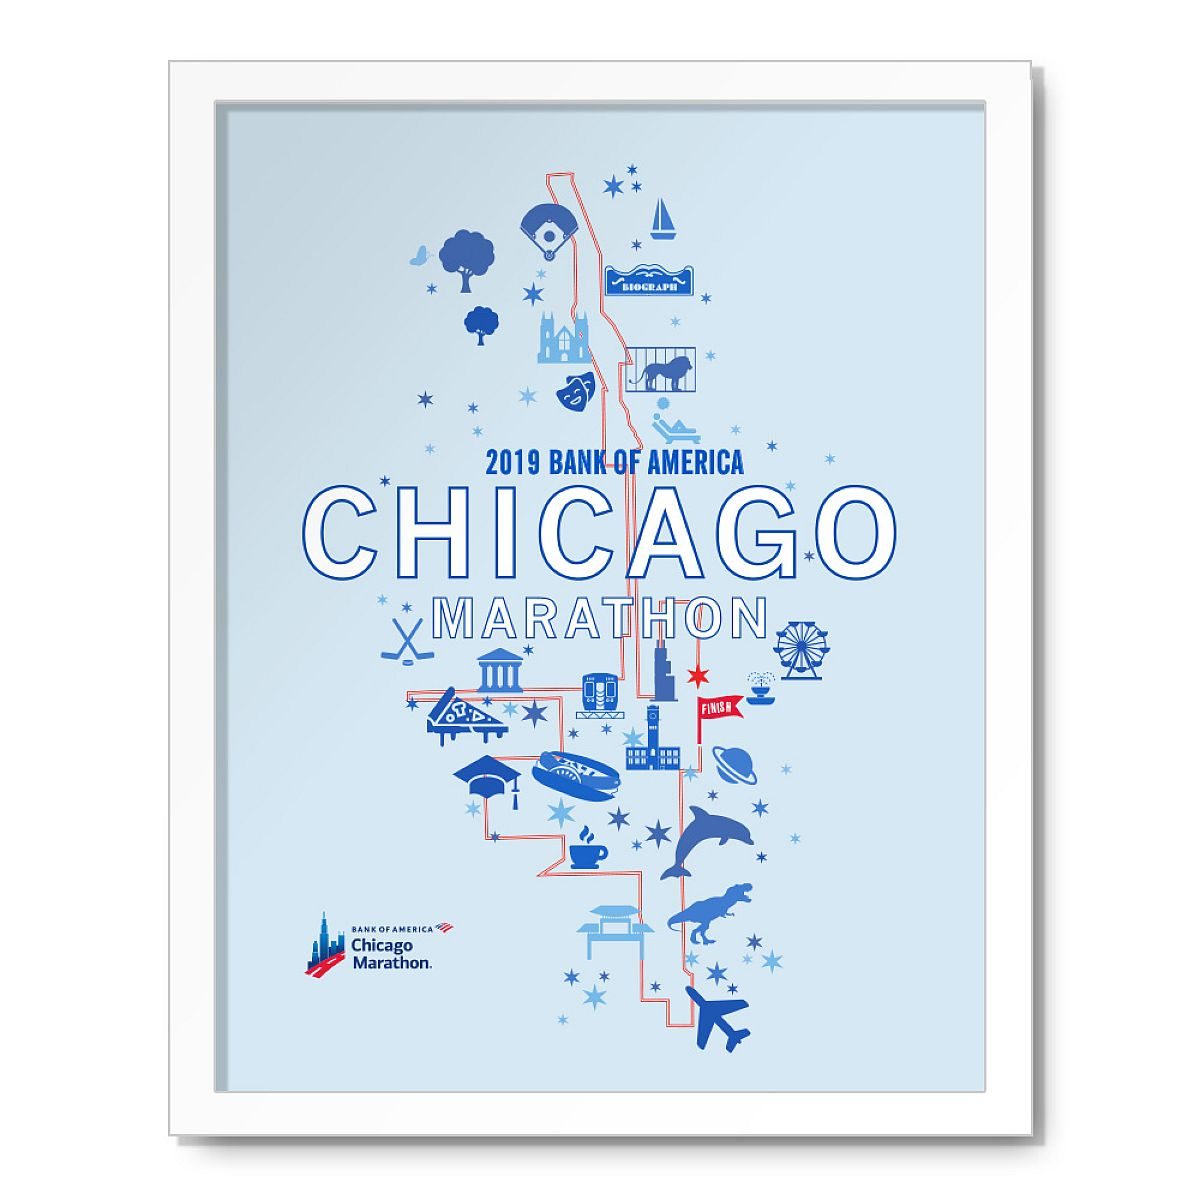 2019 Bank of America Chicago Marathon Map